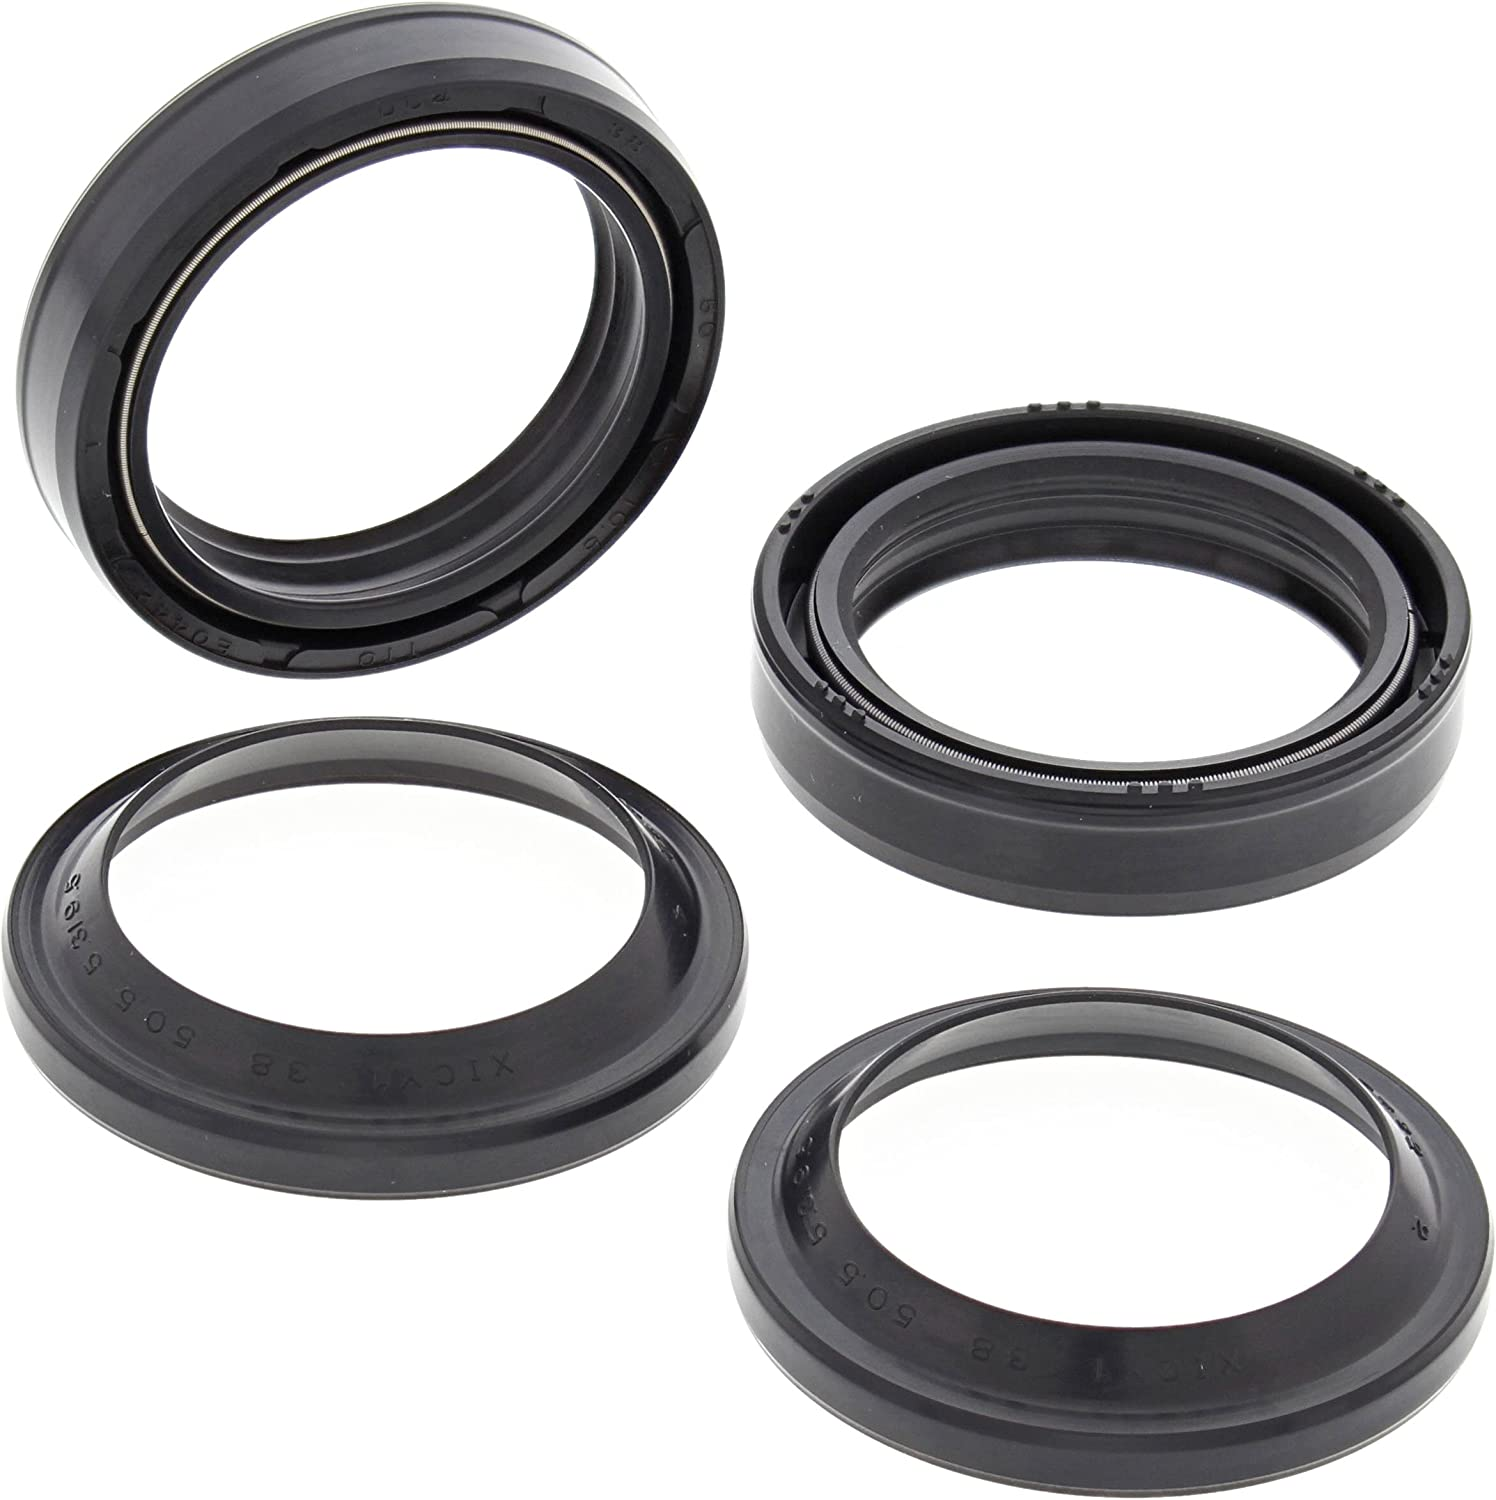 ALL BALLS FORK OIL /& DUST SEAL KIT FITS YAMAHA YZ125 1977-1980